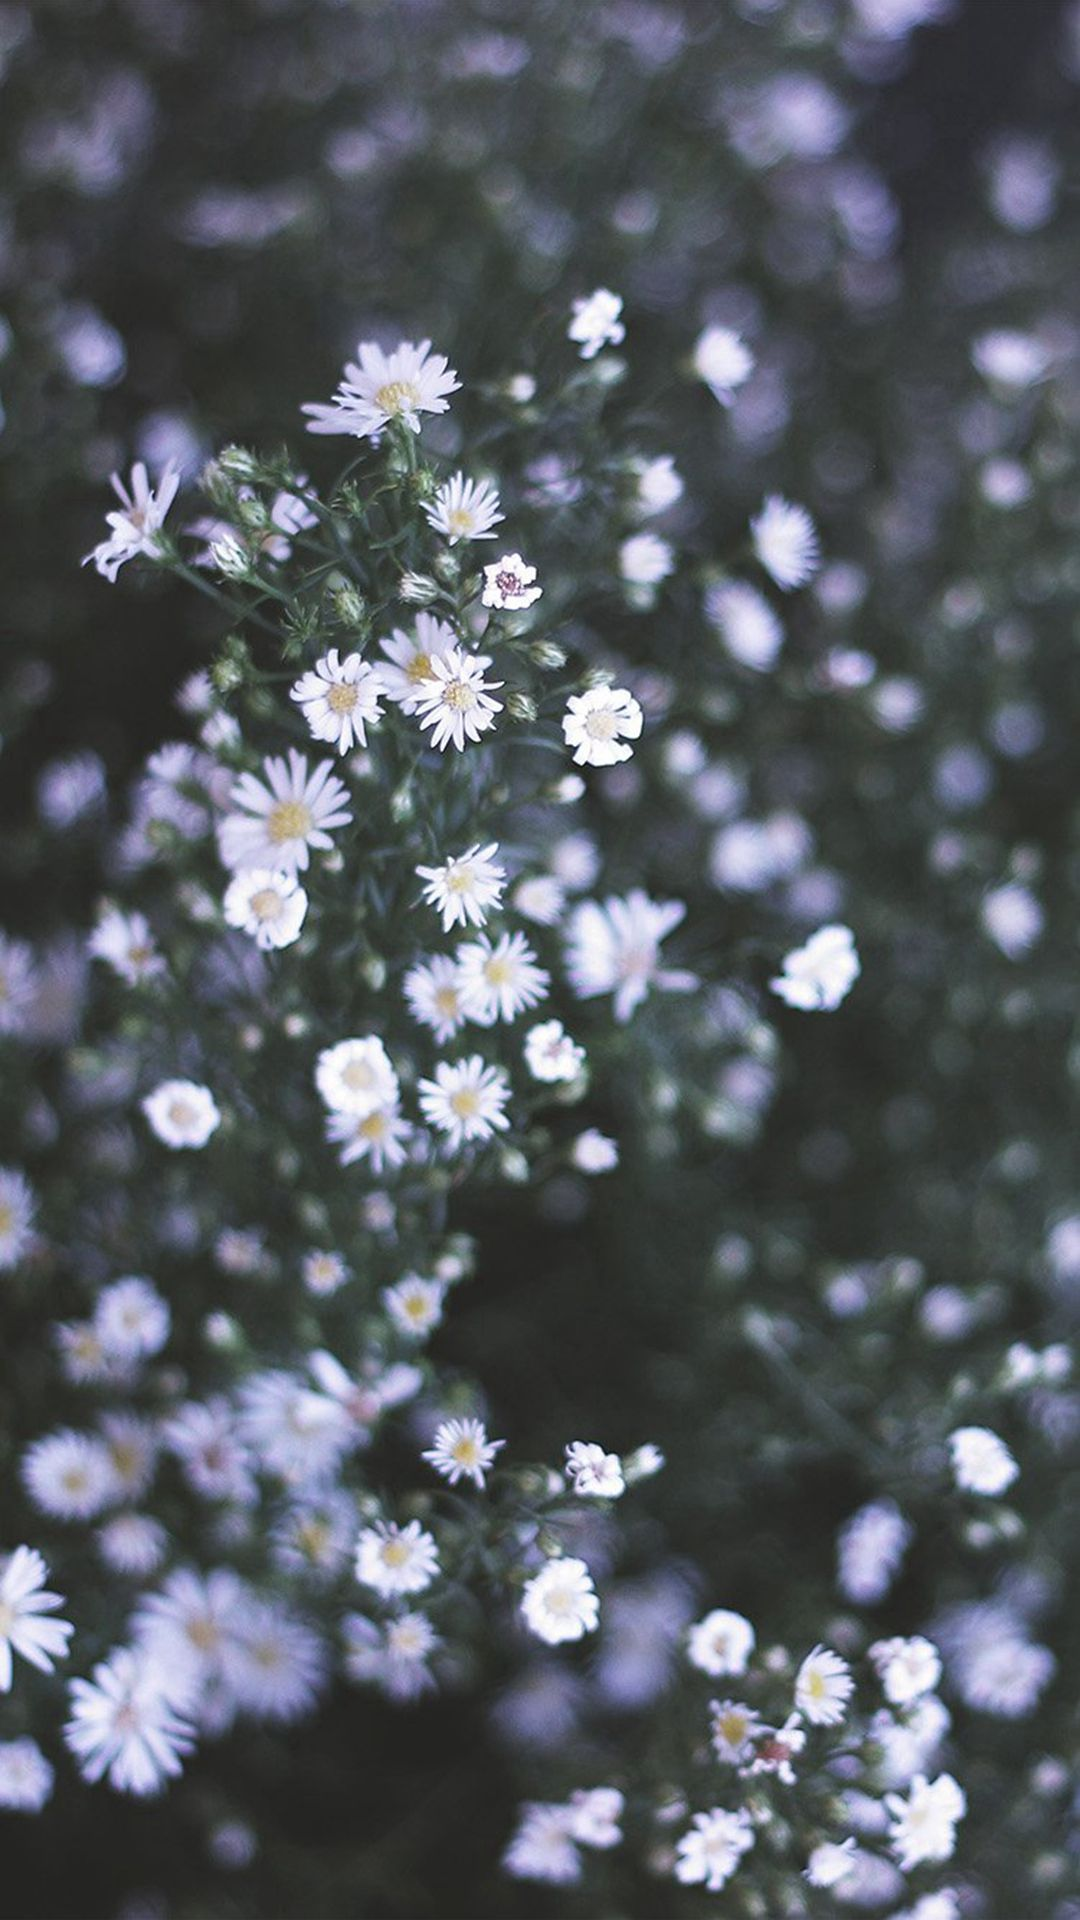 Flower White Spring Nature Iphone 6 Wallpaper Iphone 6